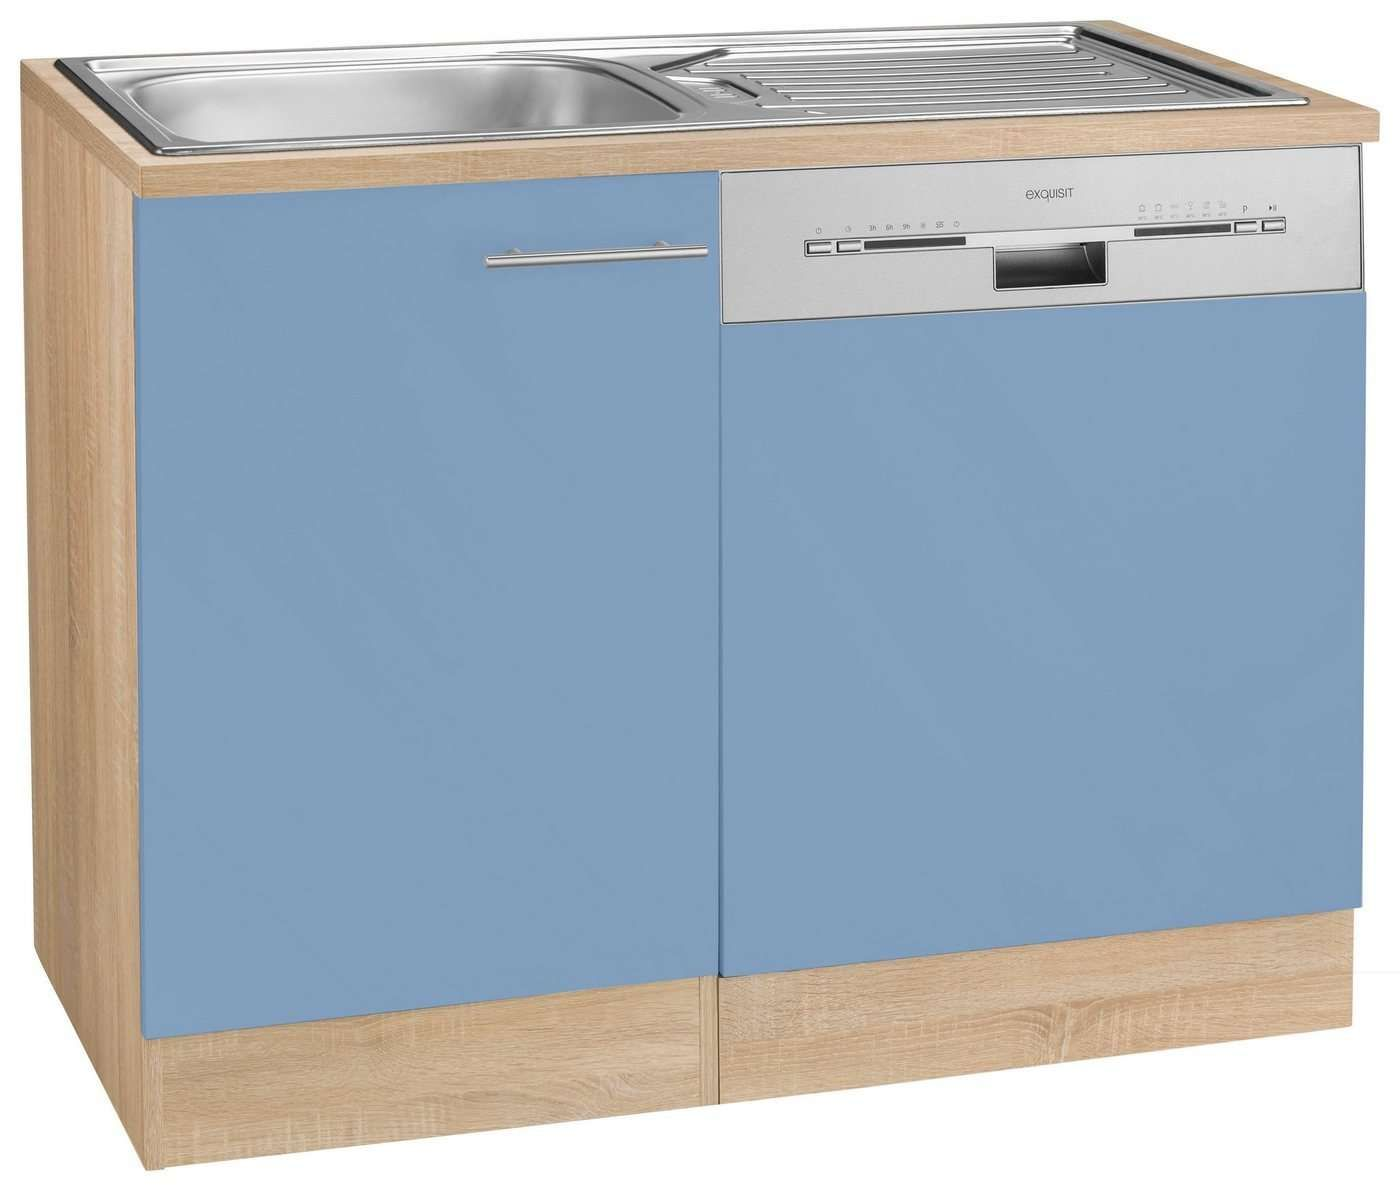 Hochschrank Fur Backofen Geschirrspuler Schrank Neueste Hochschrank Fur Backofen Planen Hochschrank Fur Backofen 3 In 2020 Optifit Home Appliances Trash Can